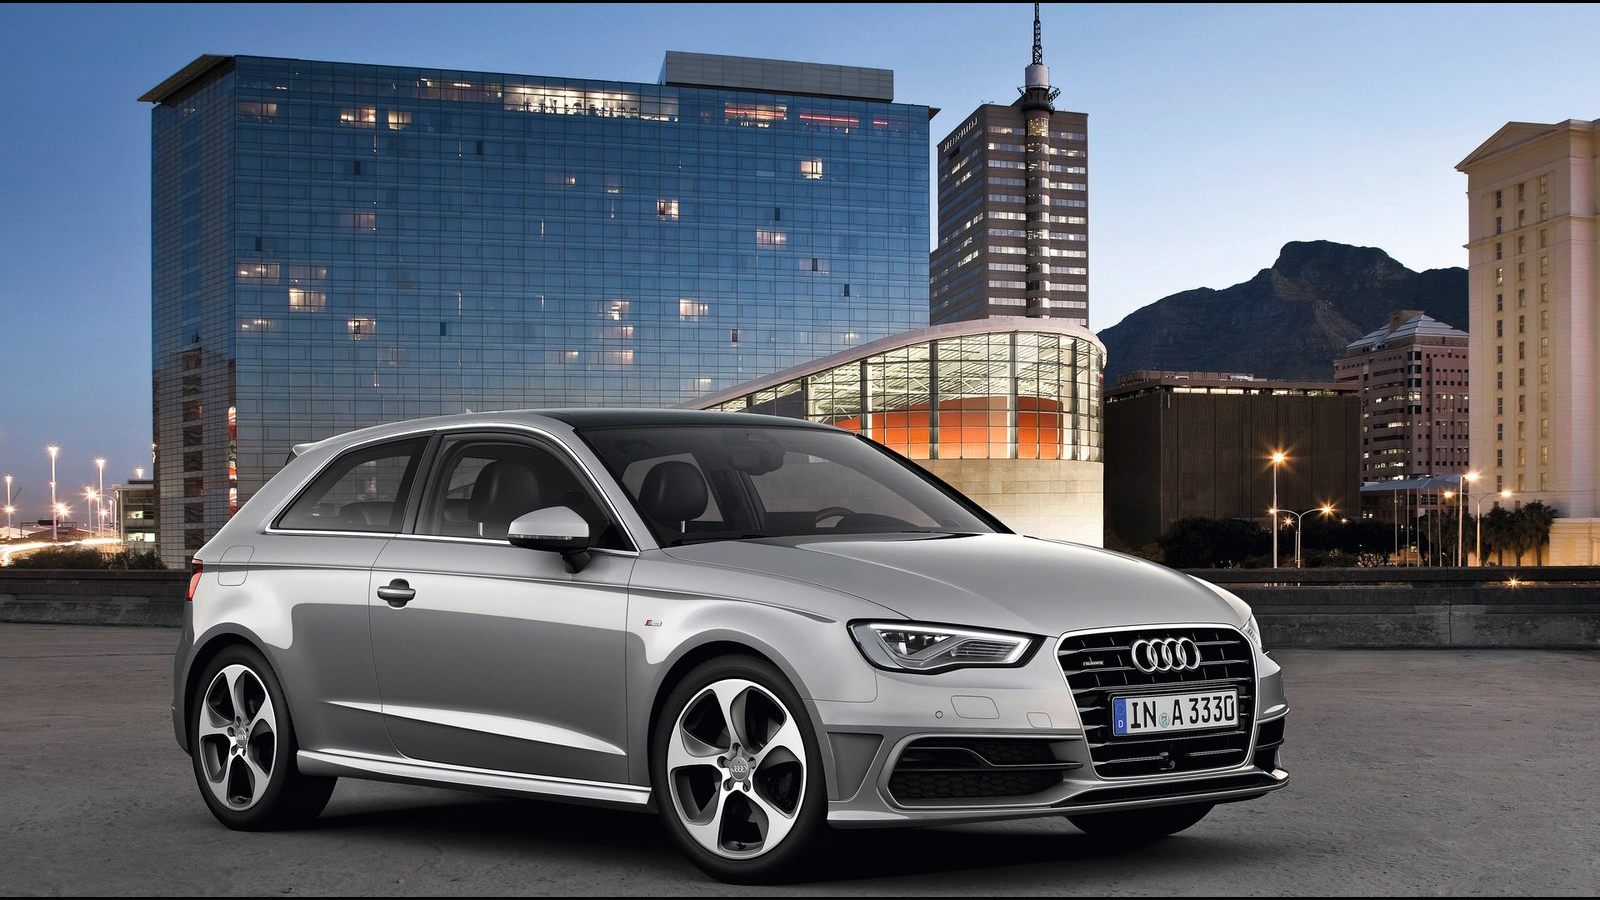 Audi A3 HD Wallpapers | The World of Audi